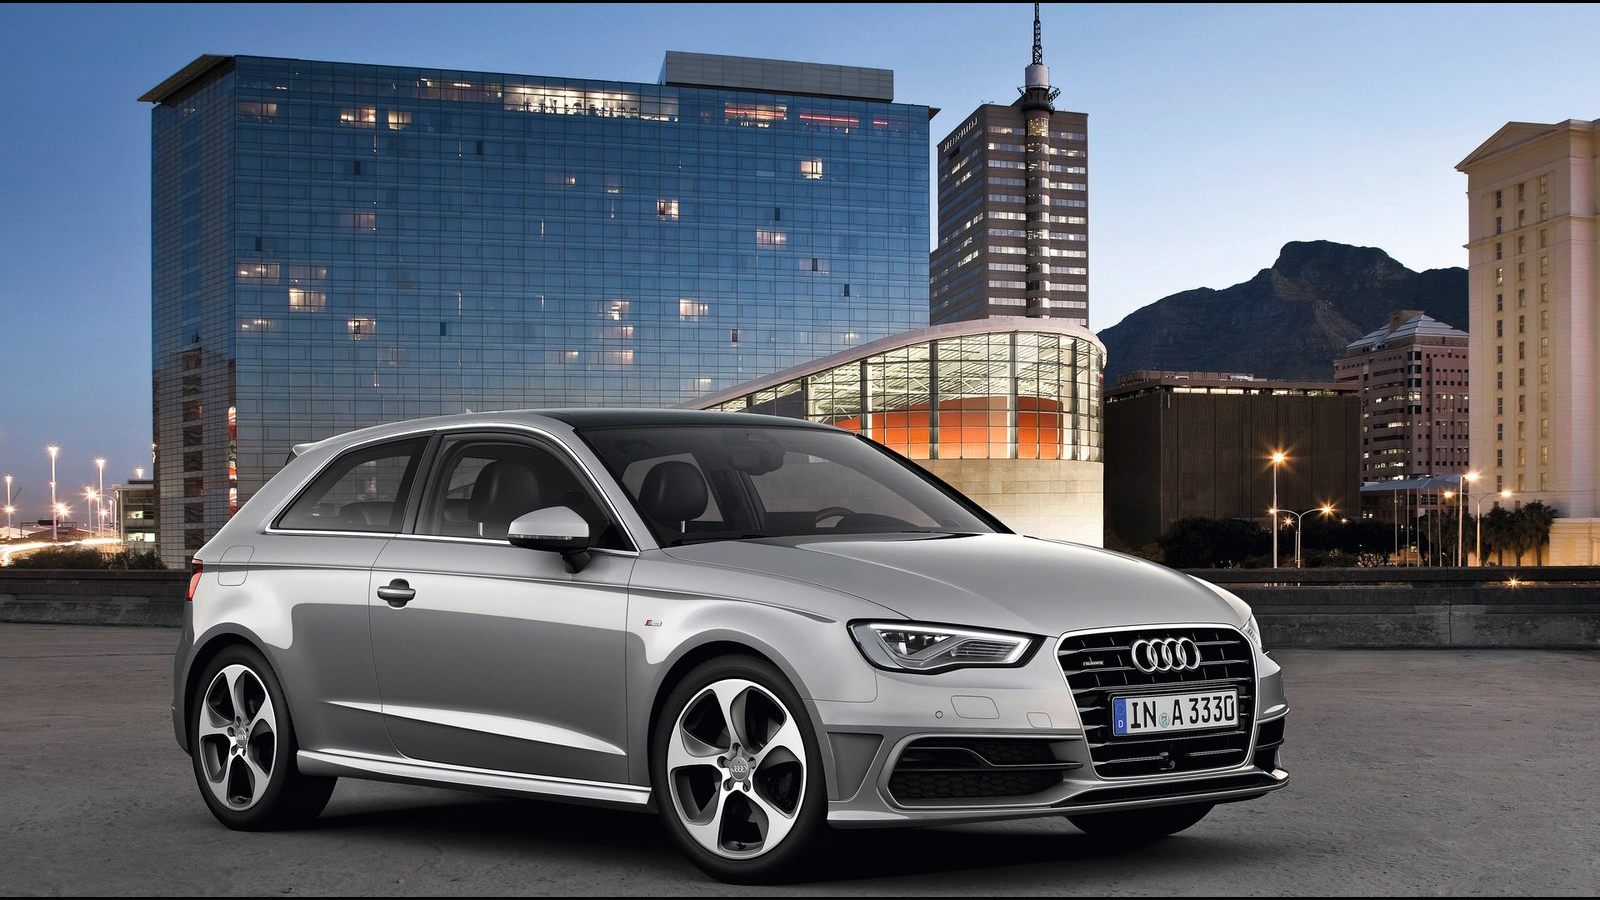 Audi A3 HD Wallpapers | The World of Audi